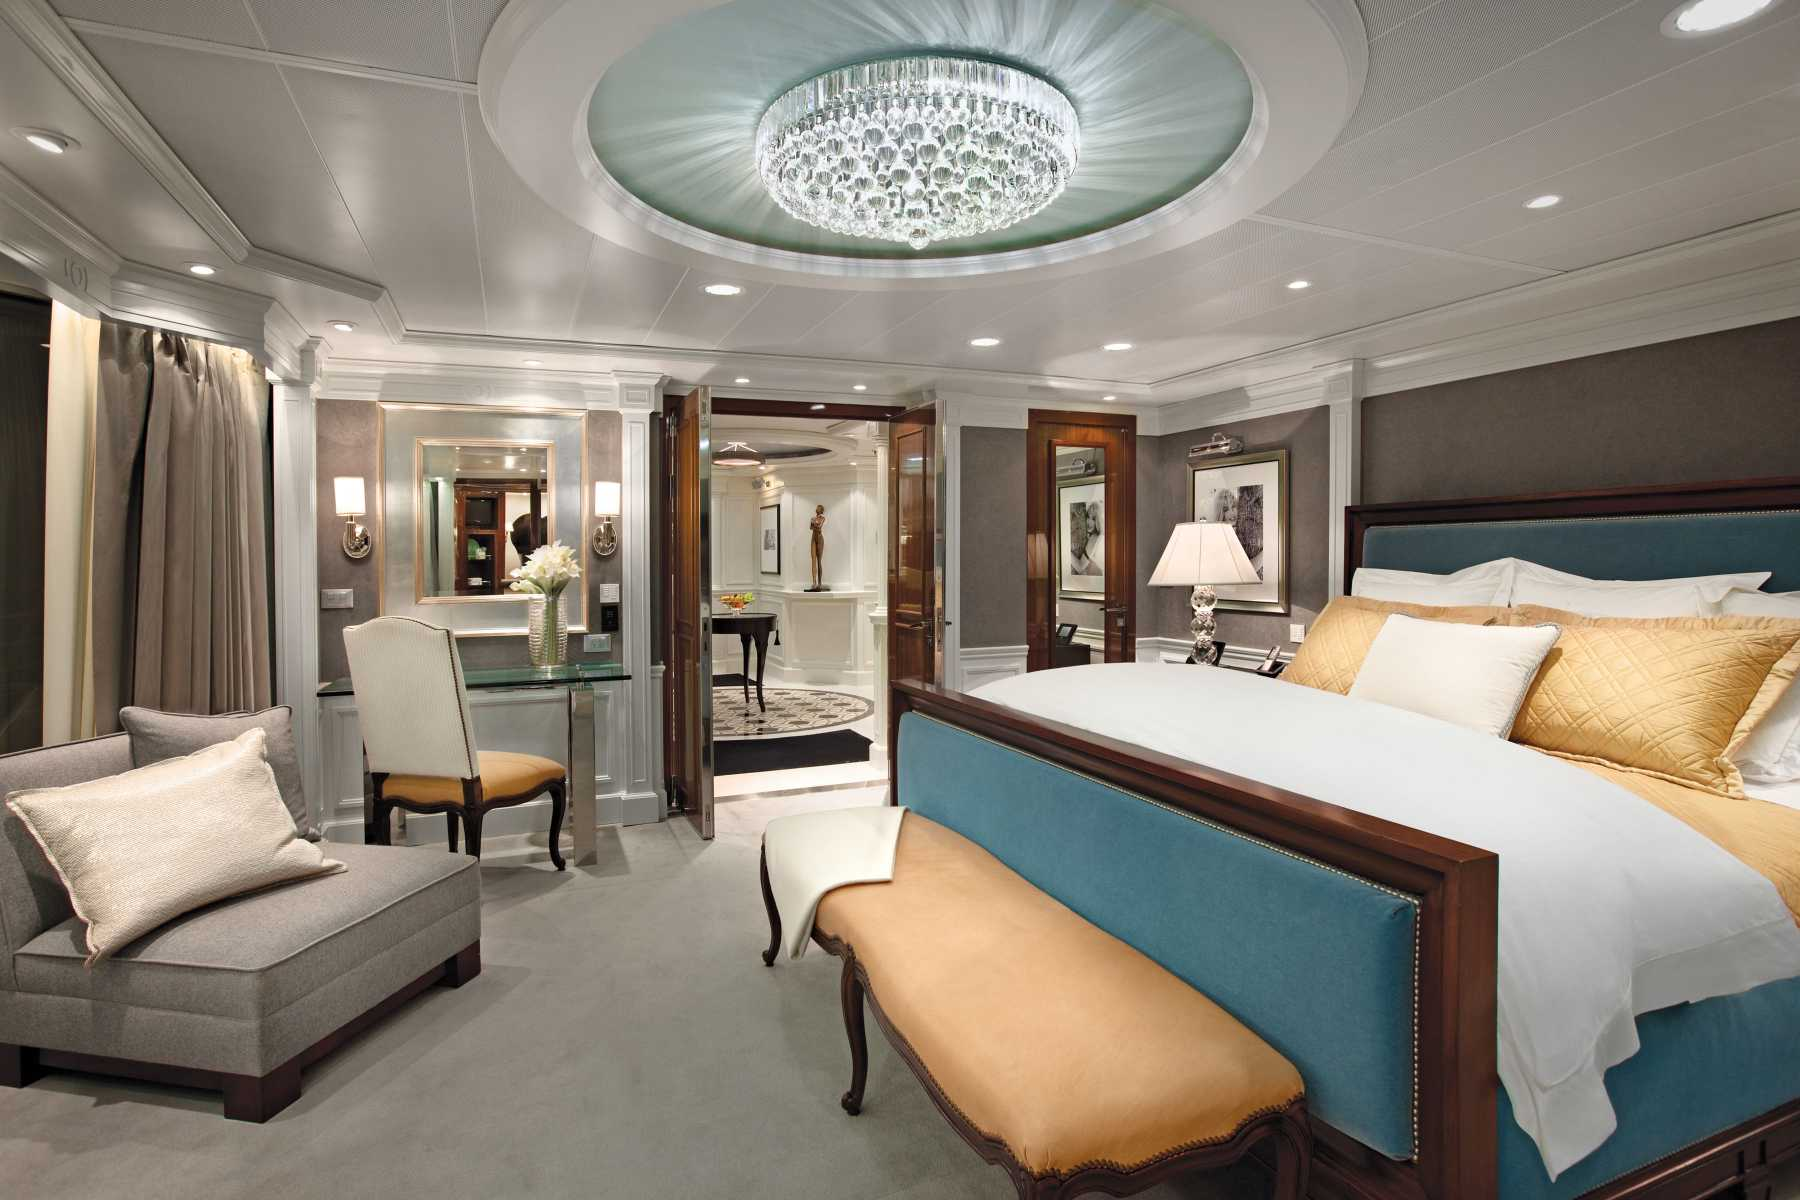 Oceania Cruises Oceania Class Accommodation Owners Suite Bedroom.jpg